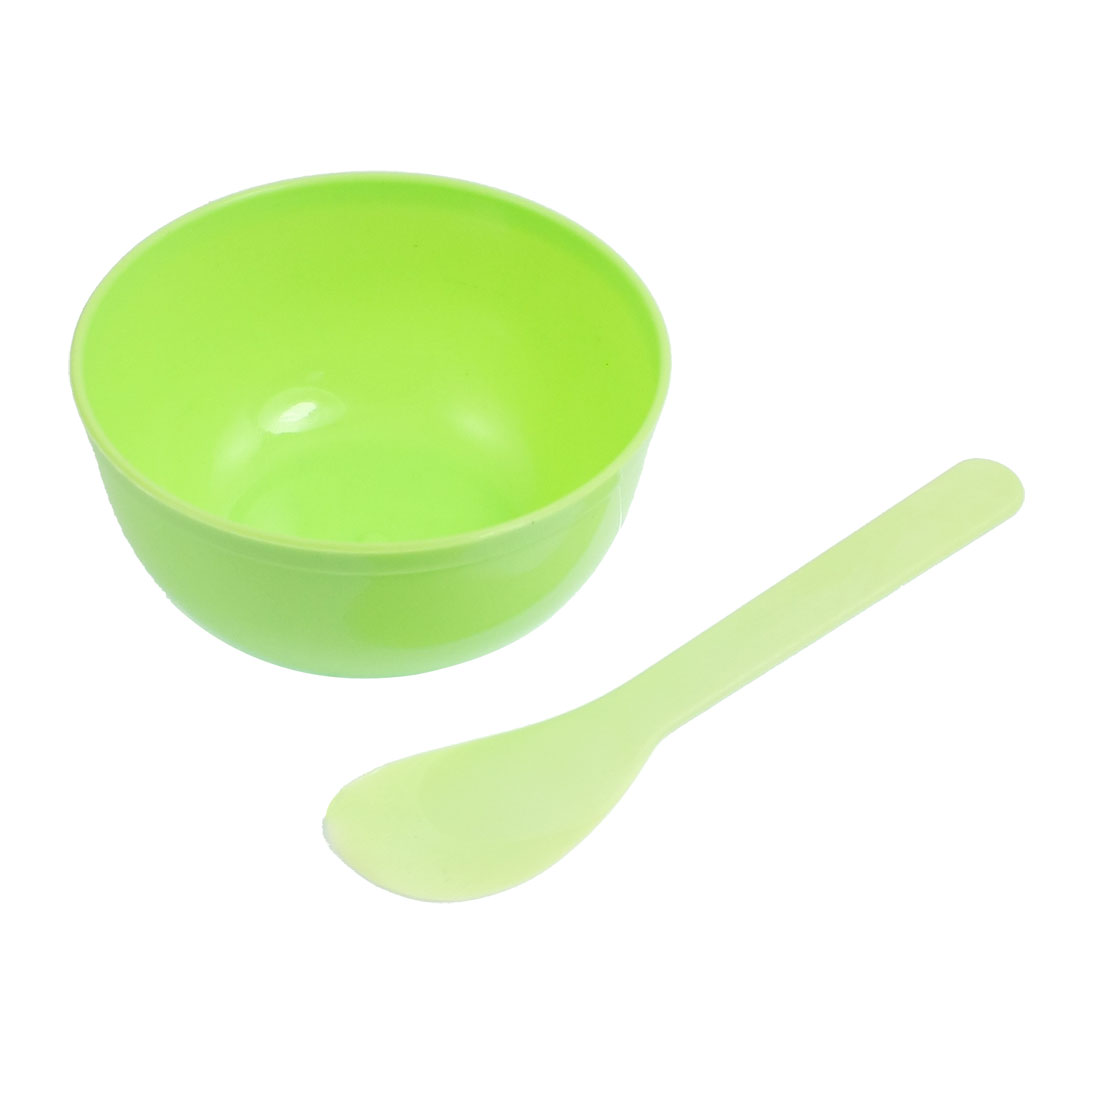 Green Plastic Facial Mask Bowl Stick Makeup Tool 2 in 1 Set